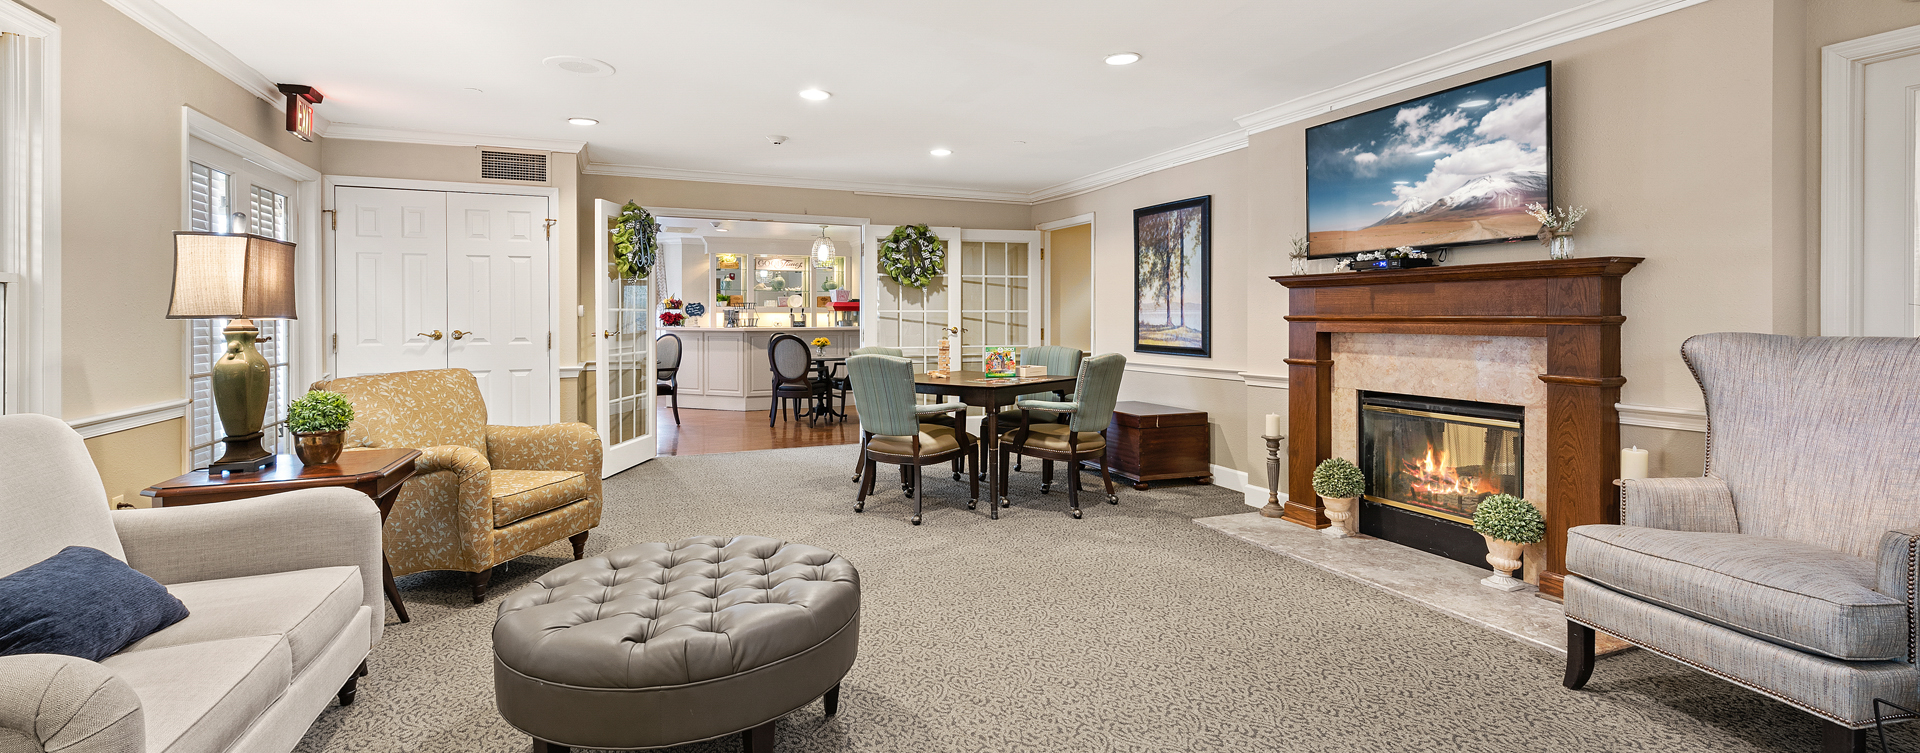 Socialize with friends in the living room at Bickford of Bexley